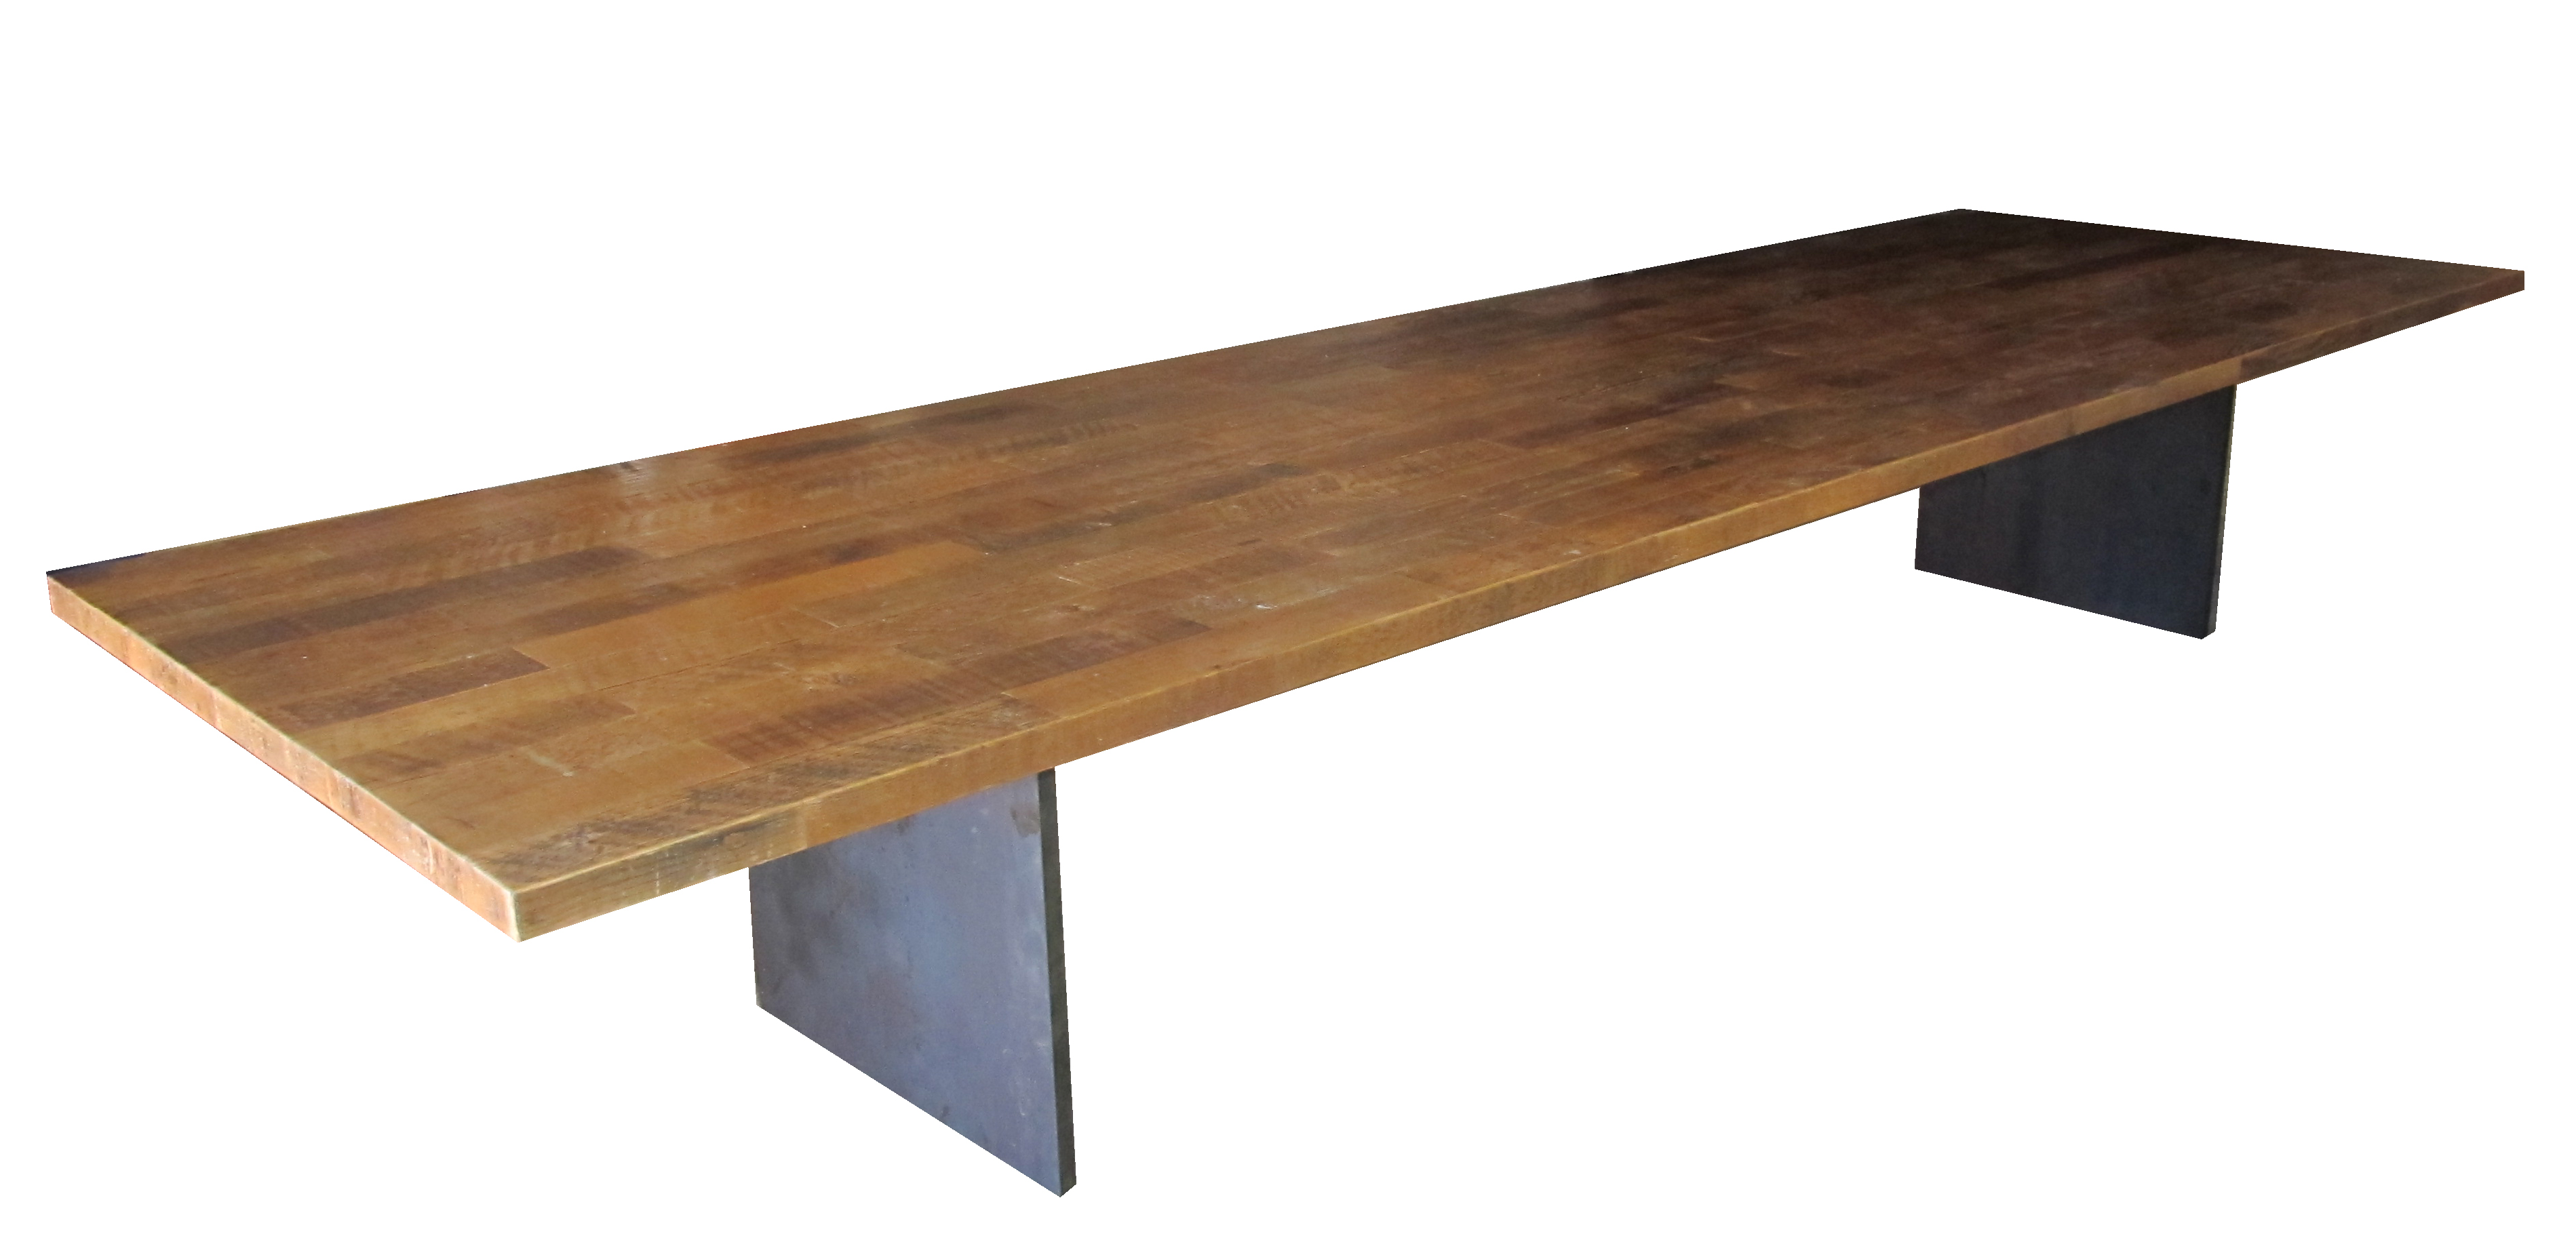 Delightful Industrial Table, Fifteen Feet Long With Reclaimed Wood Top And Steel Base